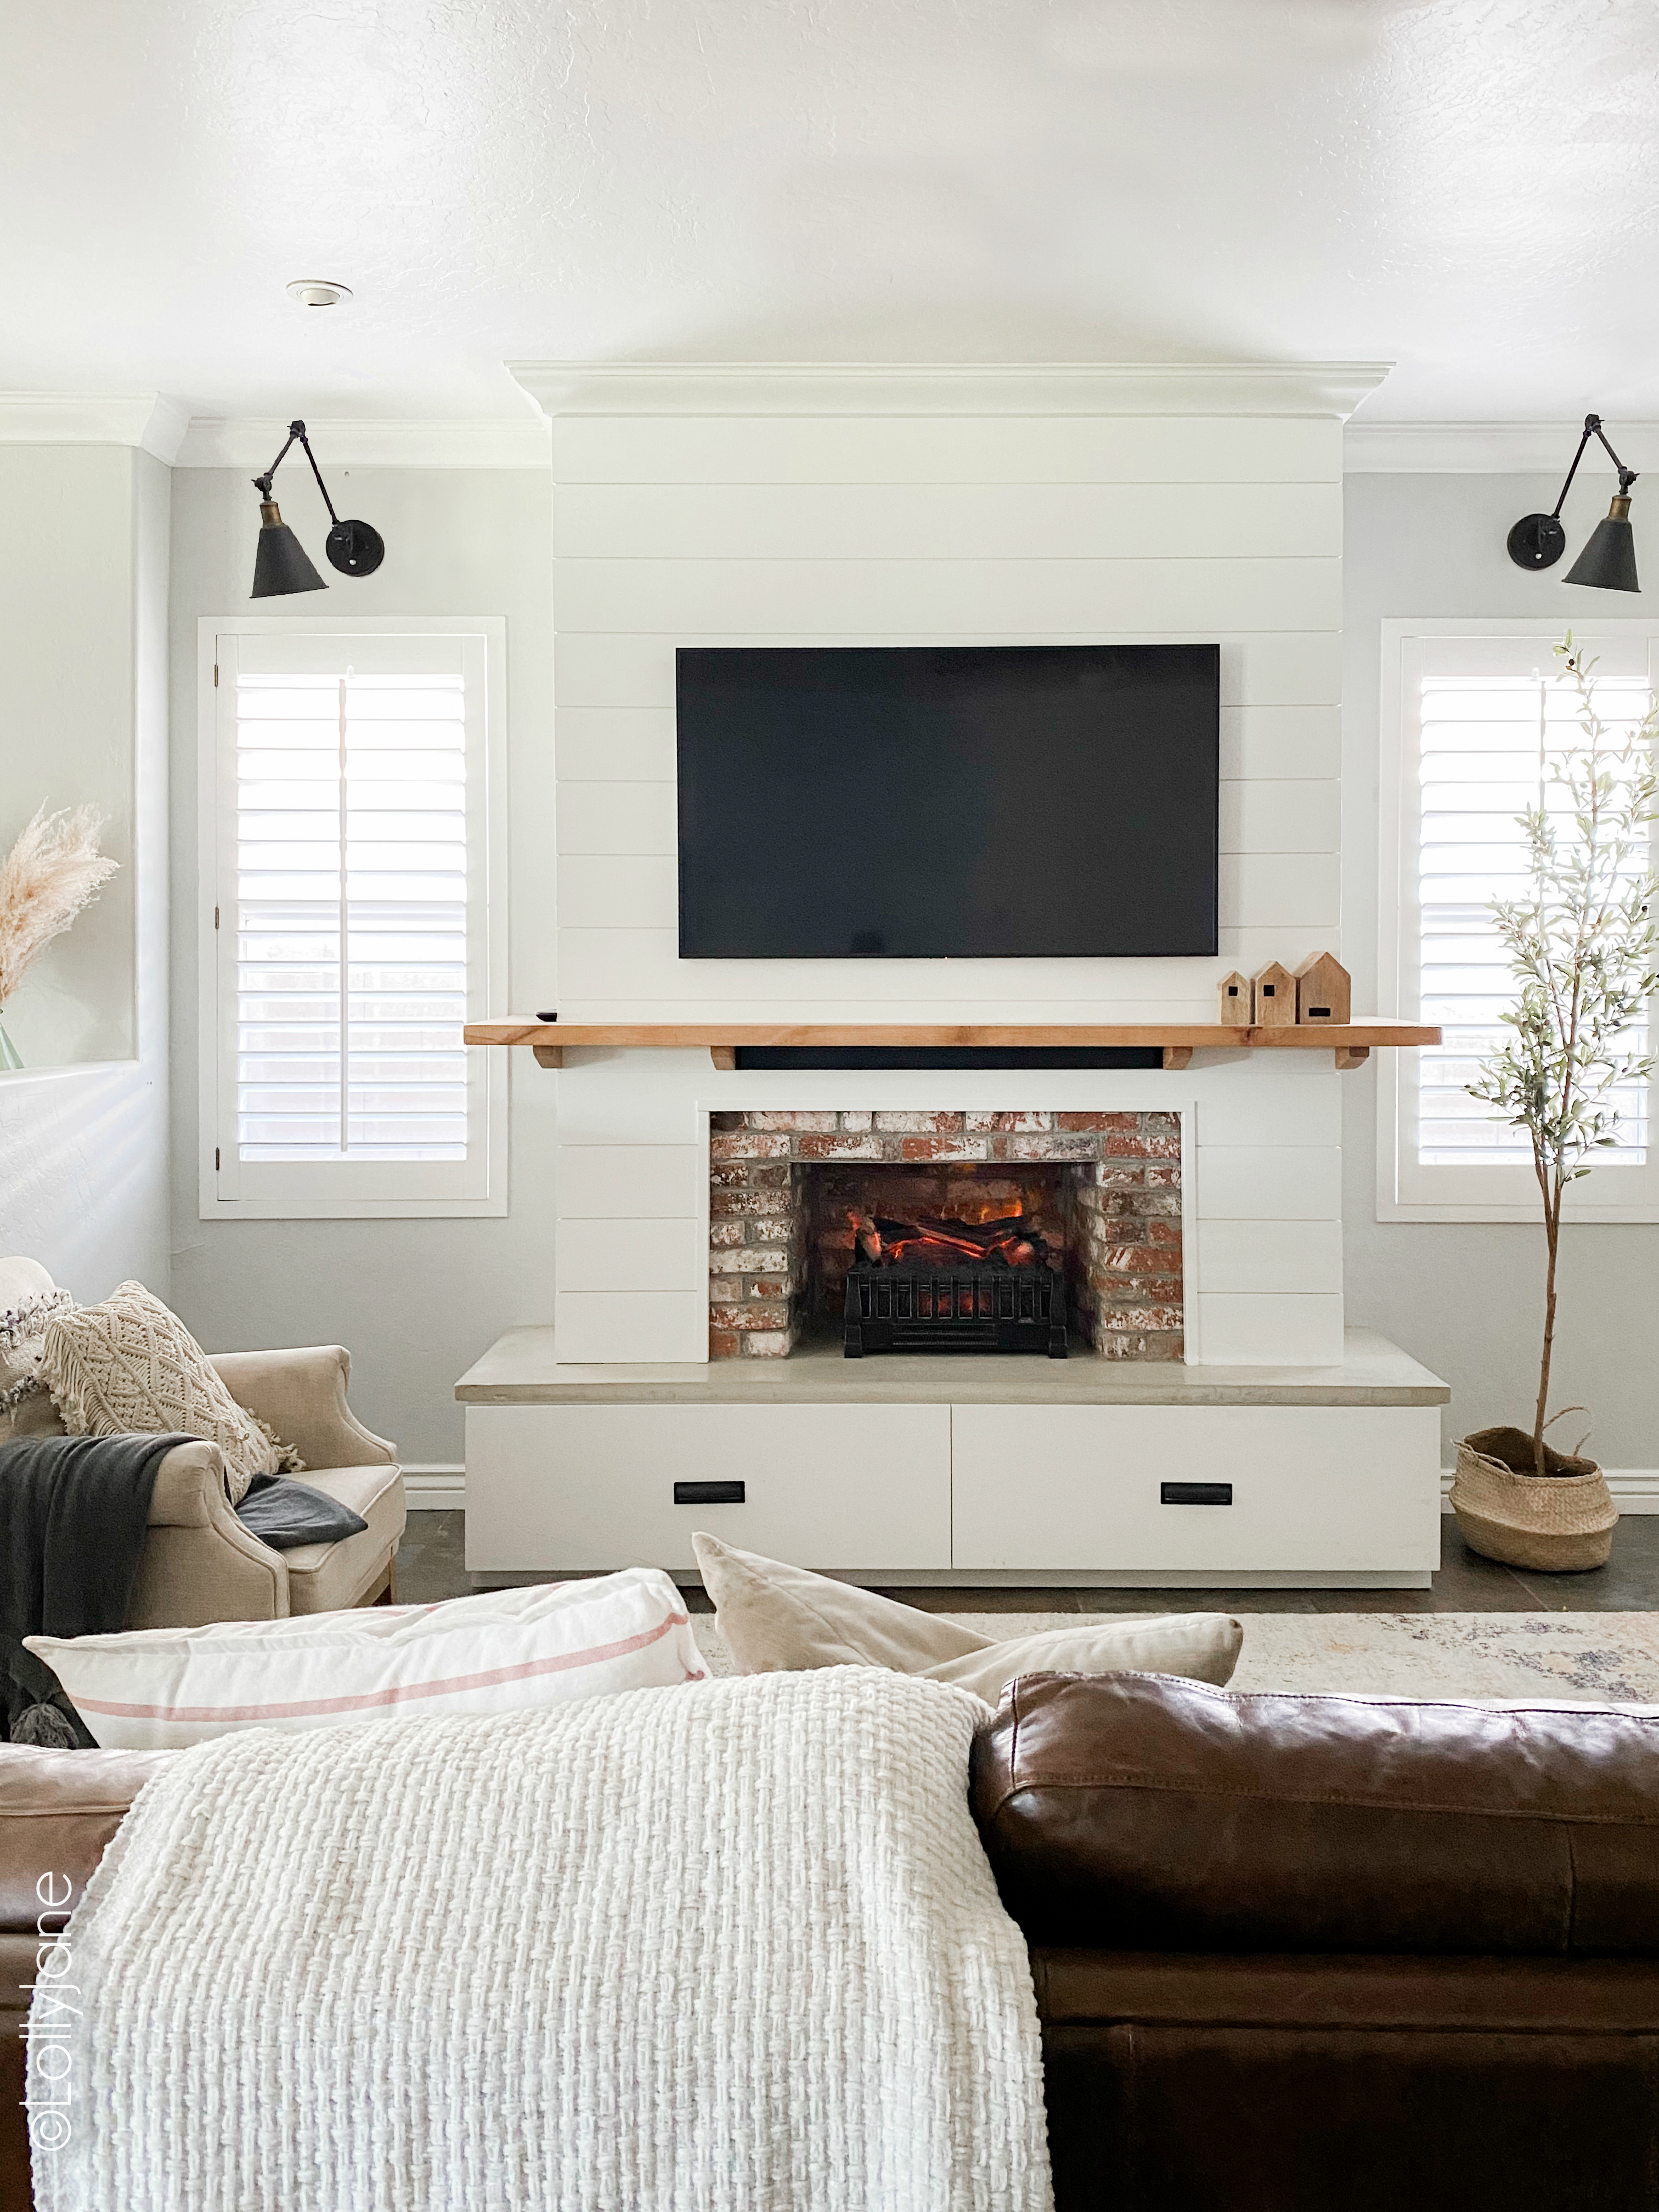 Beautiful modern farmhouse style entertainment system... bet you thought this was a real fireplace! Look at these 5 secret built-in features! #modernfarmhouse #fauxfireplace #entertainmentsystem #diy #diyhomedecor